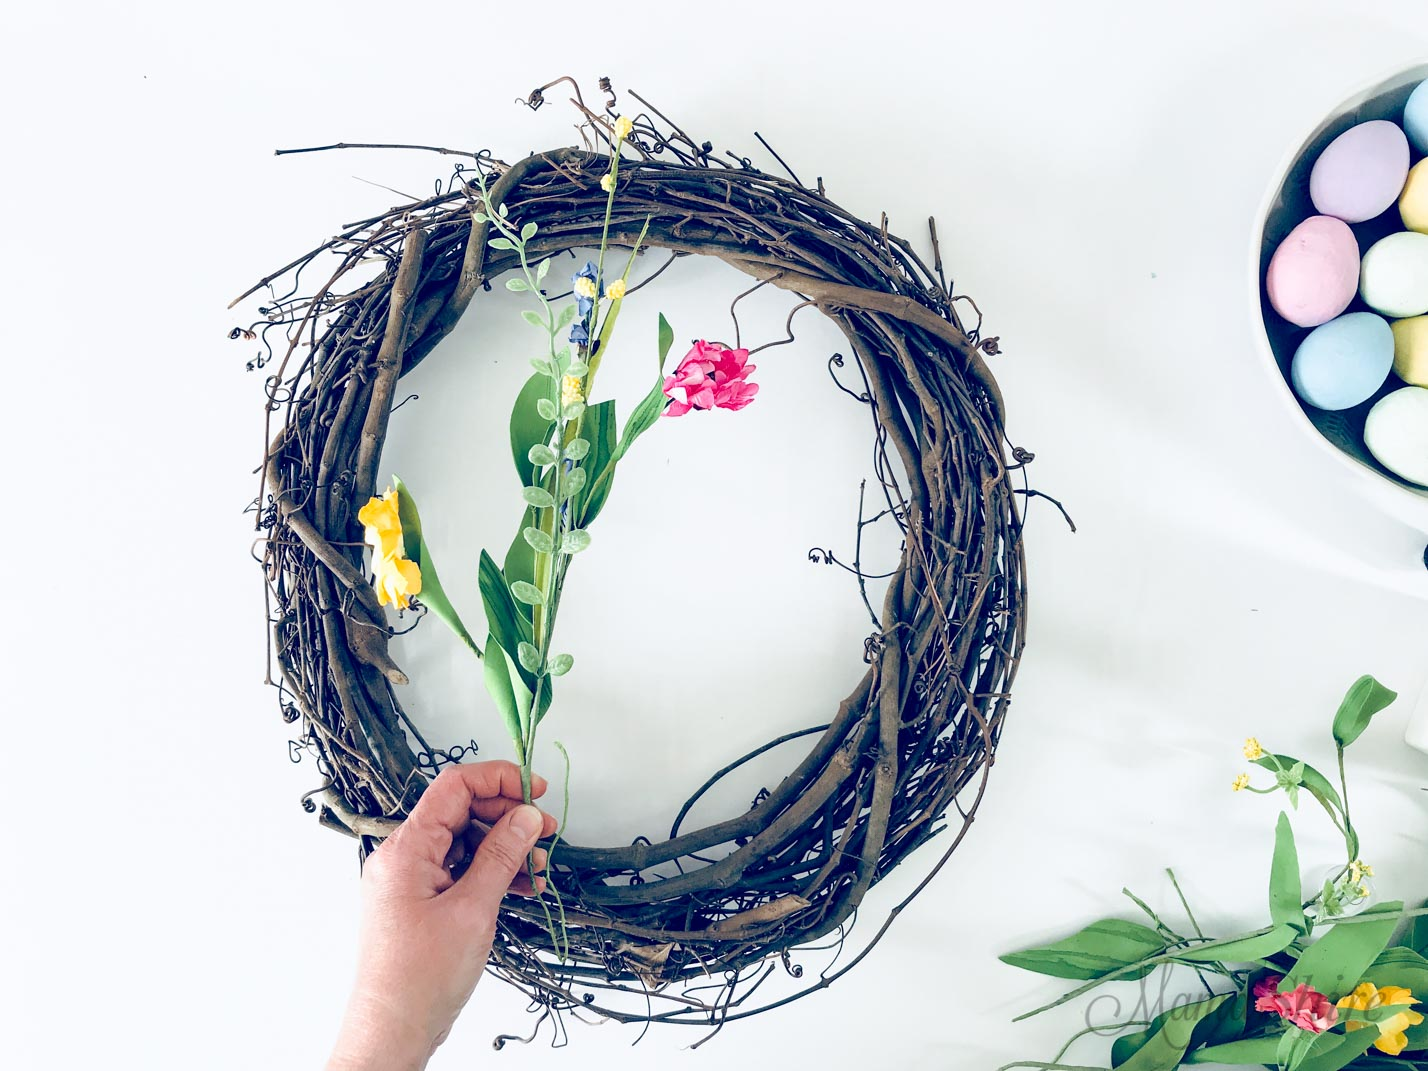 Grapevine wreath with a sprig of flowers.